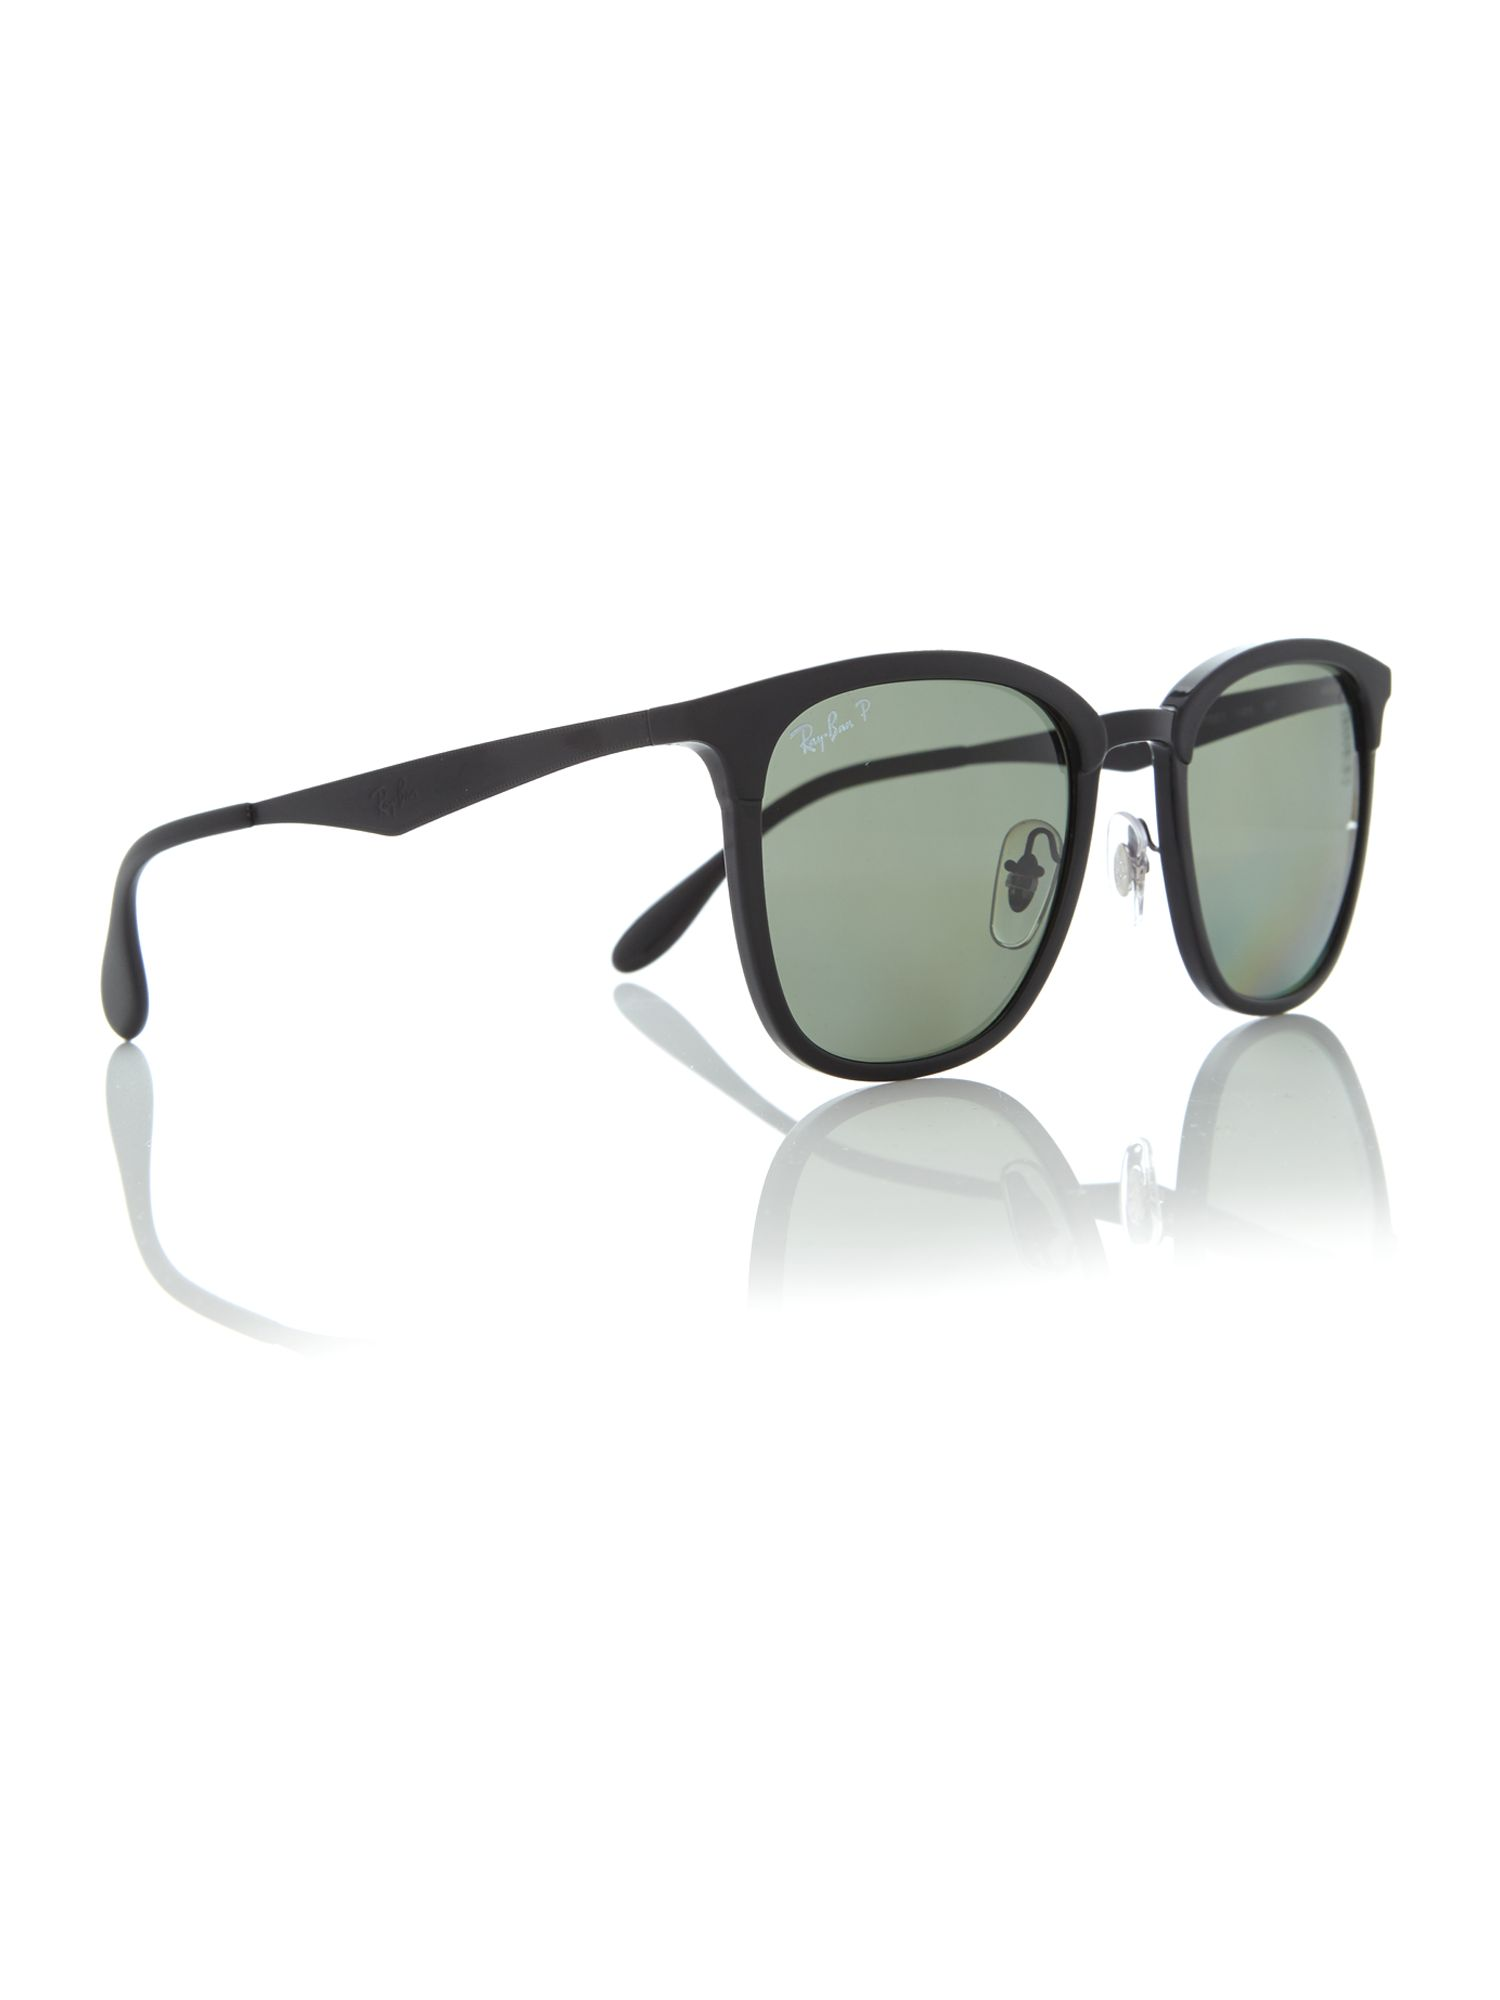 Black Rb4278 Square Sunglasses by Ray Ban